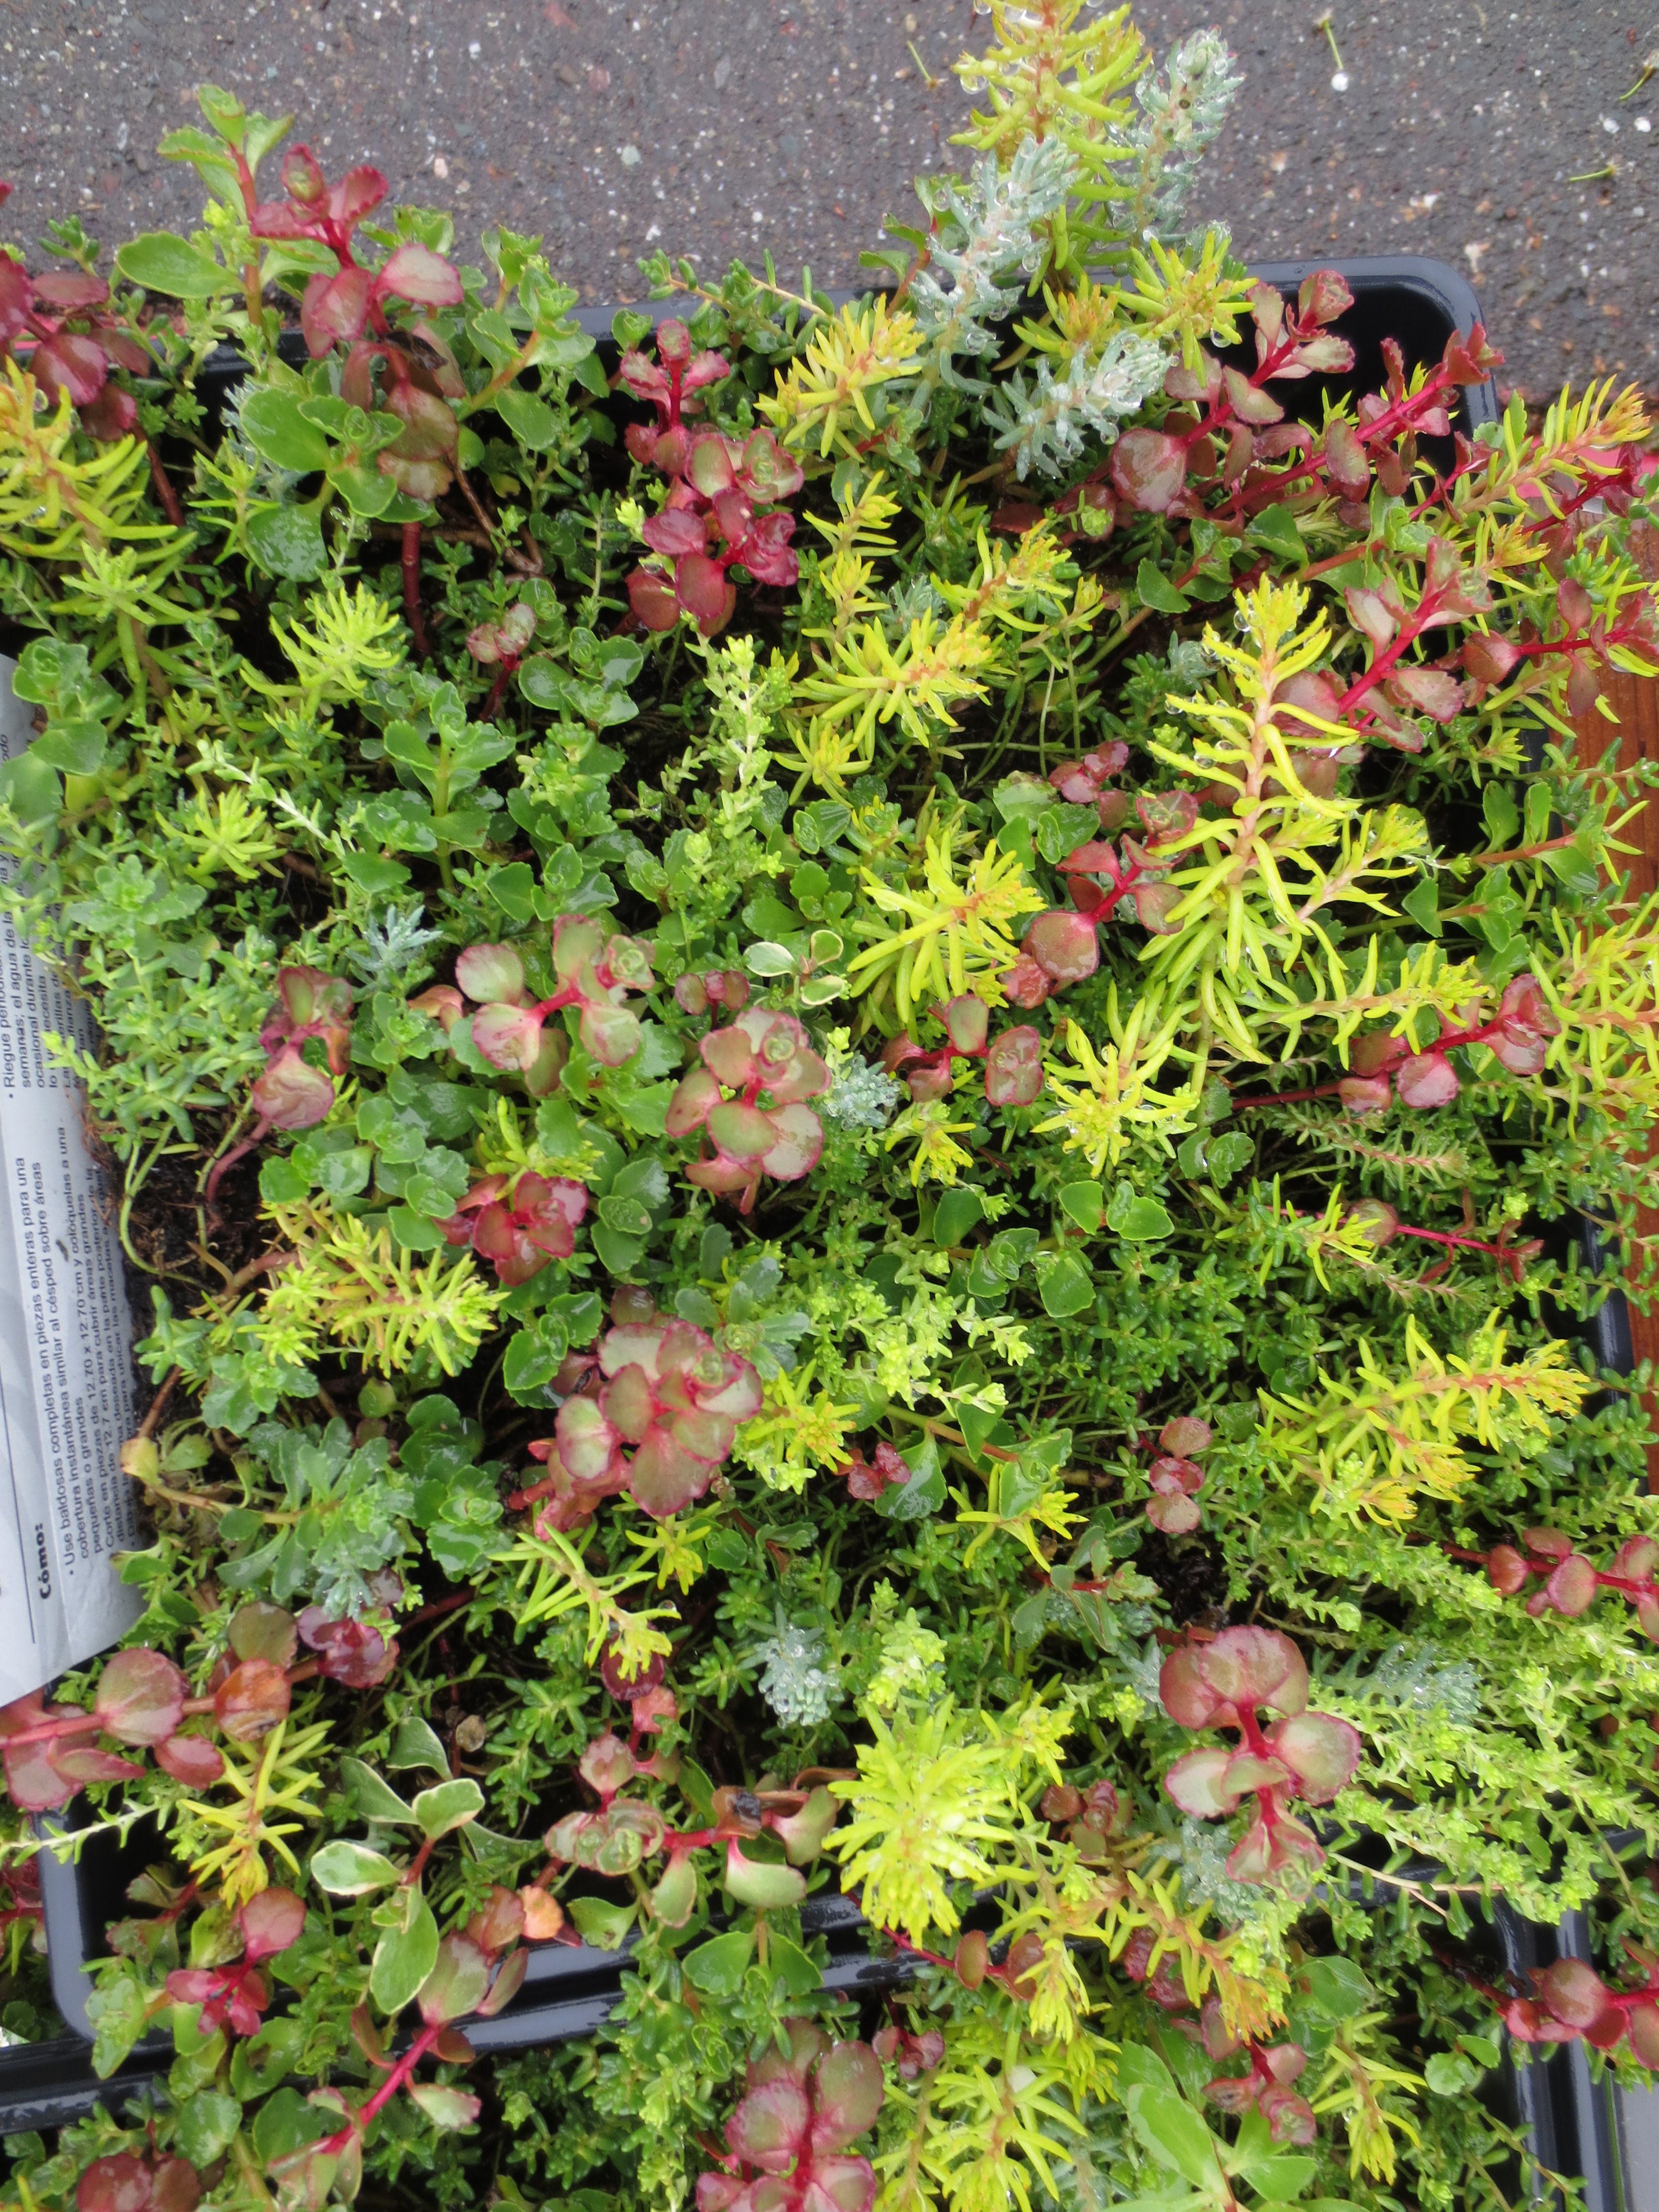 Mixed Sedum Groundcover Sold In Flats At The Home Depot Succulents Garden Sedum Ground Cover Ground Cover